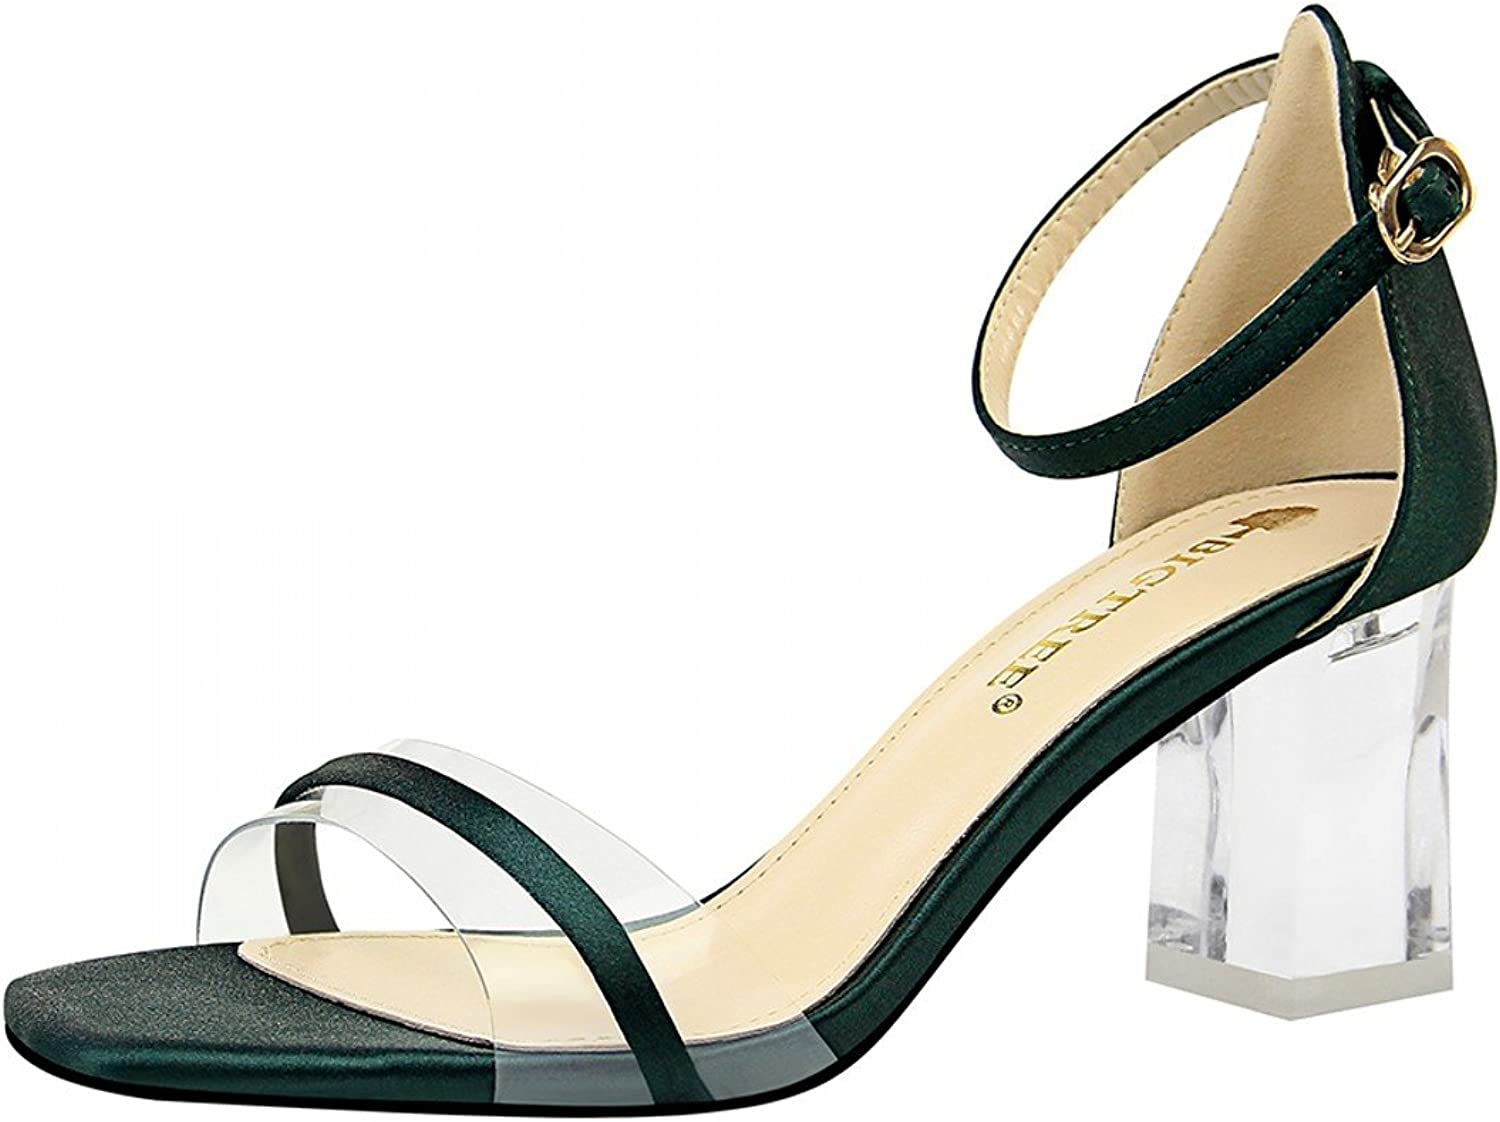 Rongzhi Womens Mid Heels Transparent Chunky Block Heels Ankle Strap Heeled Sandals Party Dress Open Toe Green